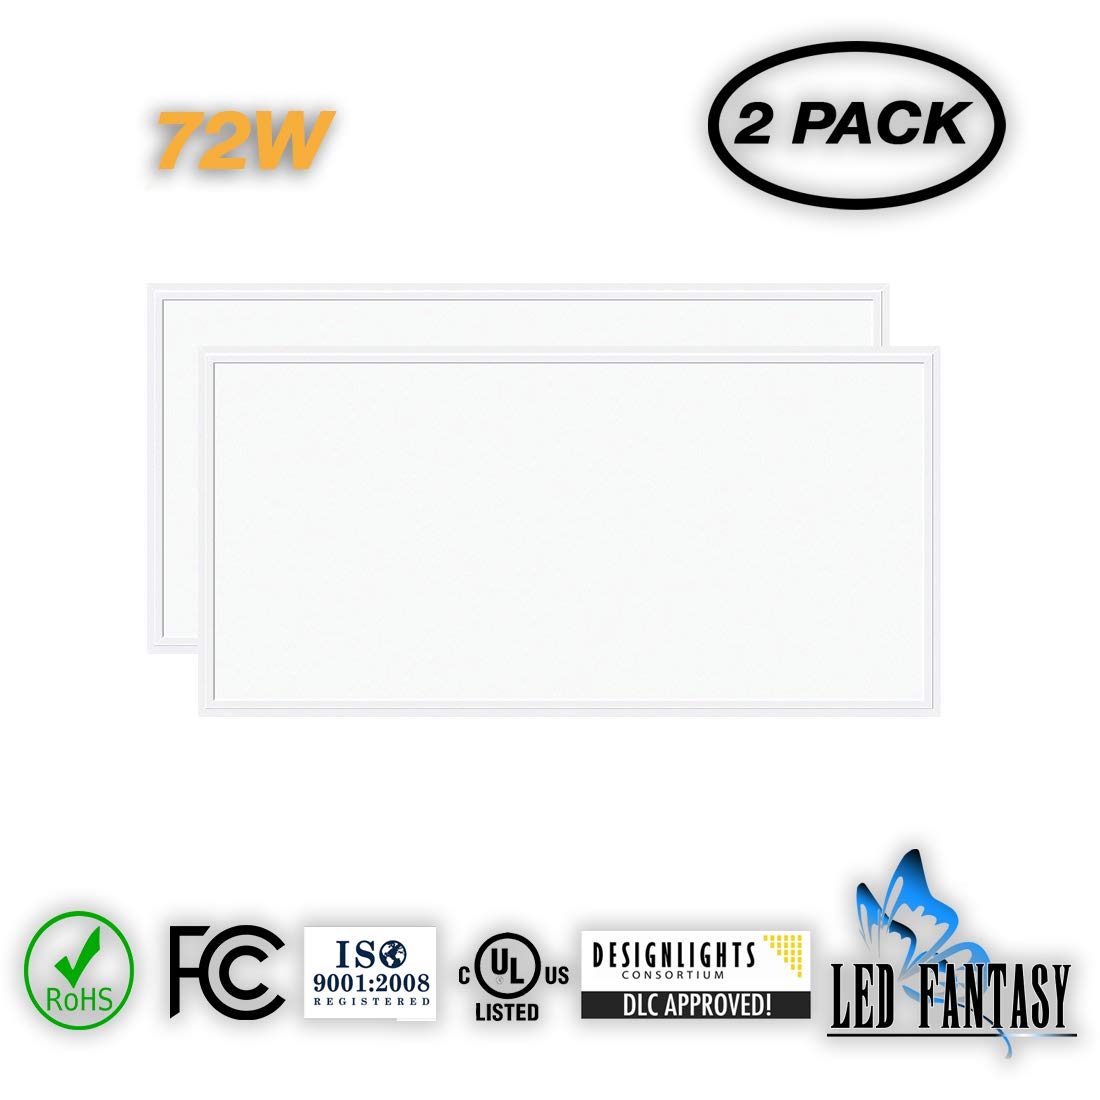 LED FANTASY LED Panel 2x4 Dimmable 72W 24''x48'' Panel (420W Equivalent), 5000K Daylight 7560 Lumens White Frame, IP40, DLC-Qualified & UL-Listed